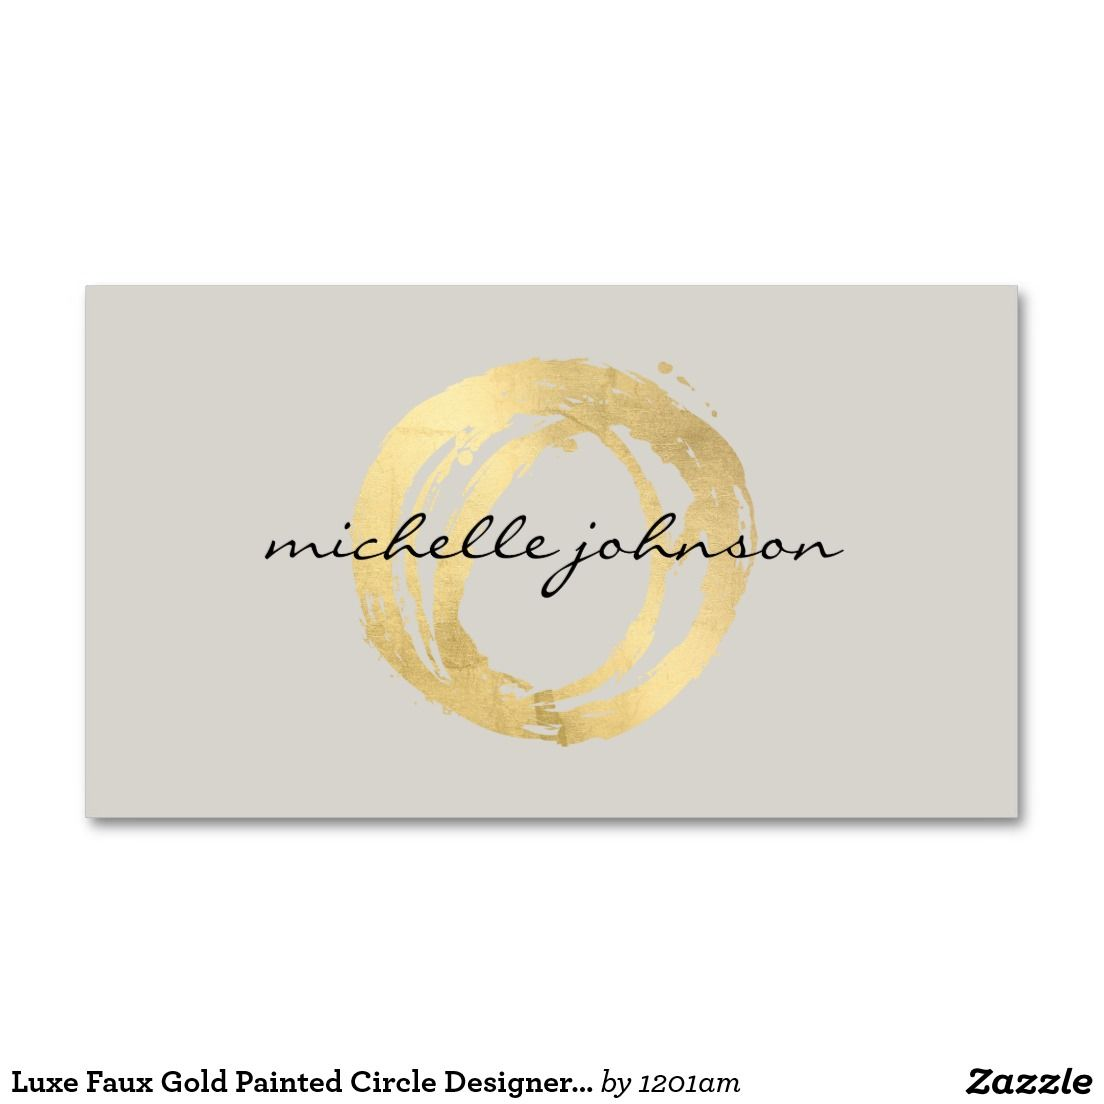 Luxe Faux Gold Painted Circle Designer Logo on Tan Business Card ...